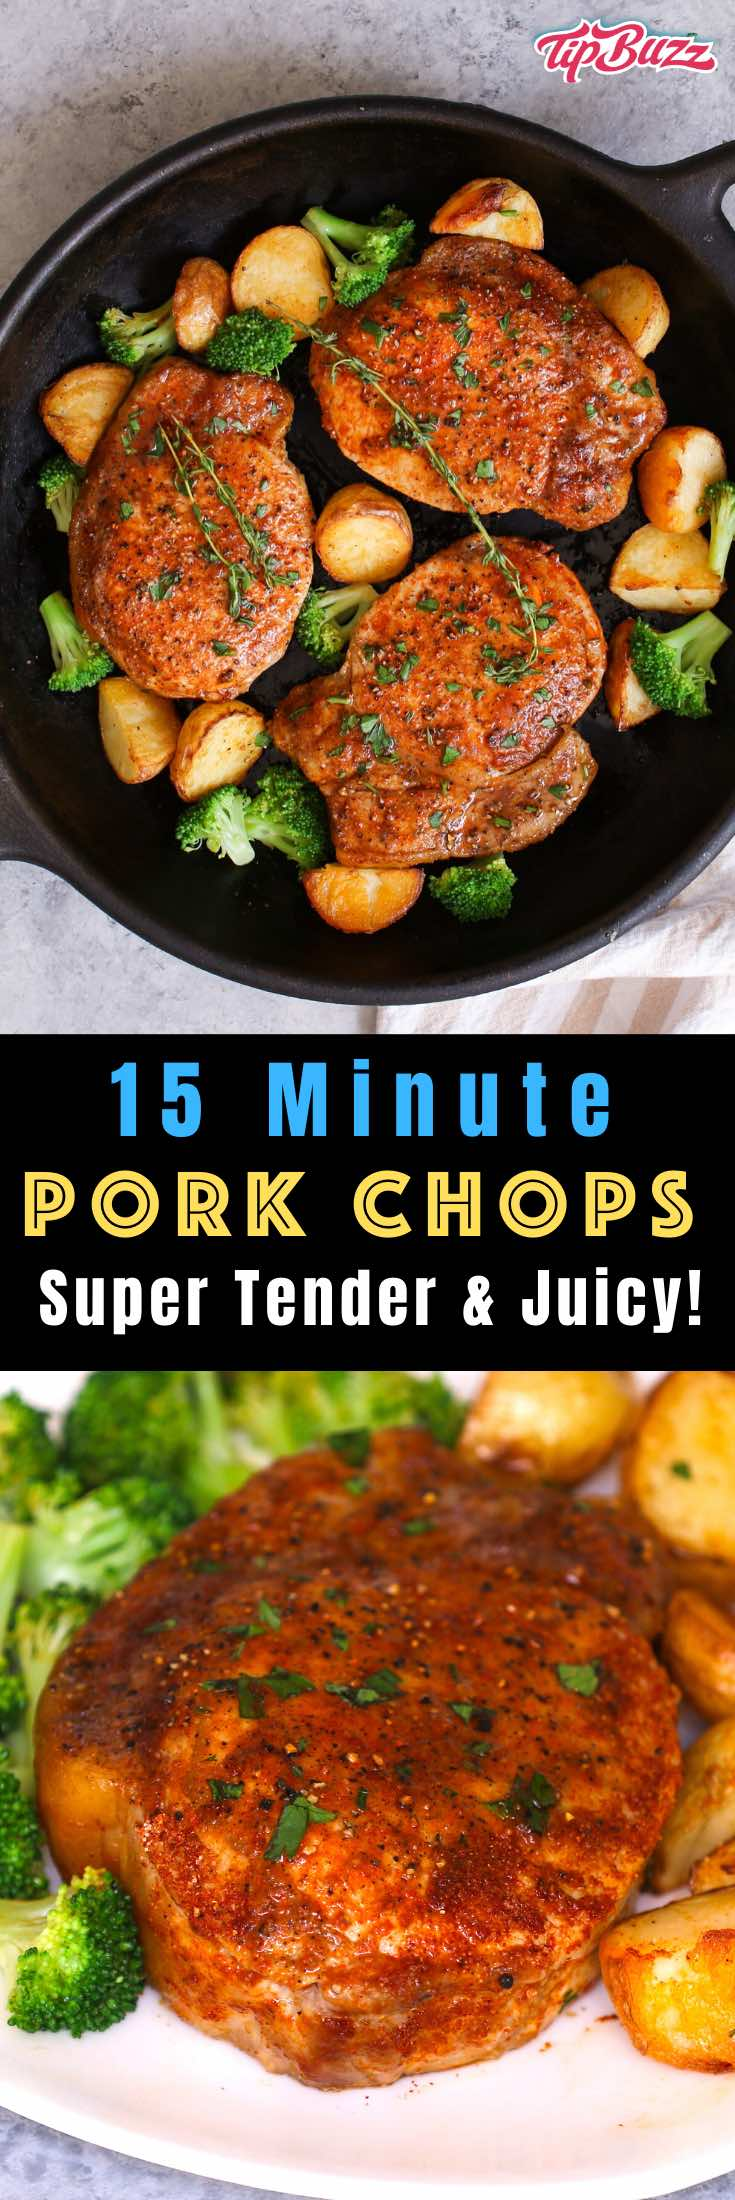 These pan-fried Boneless Pork Chops are a juicy and flavorful meal that'll be on your table in just 15 minutes, with no marinating or breading required. Perfect for a quick weeknight dinner!